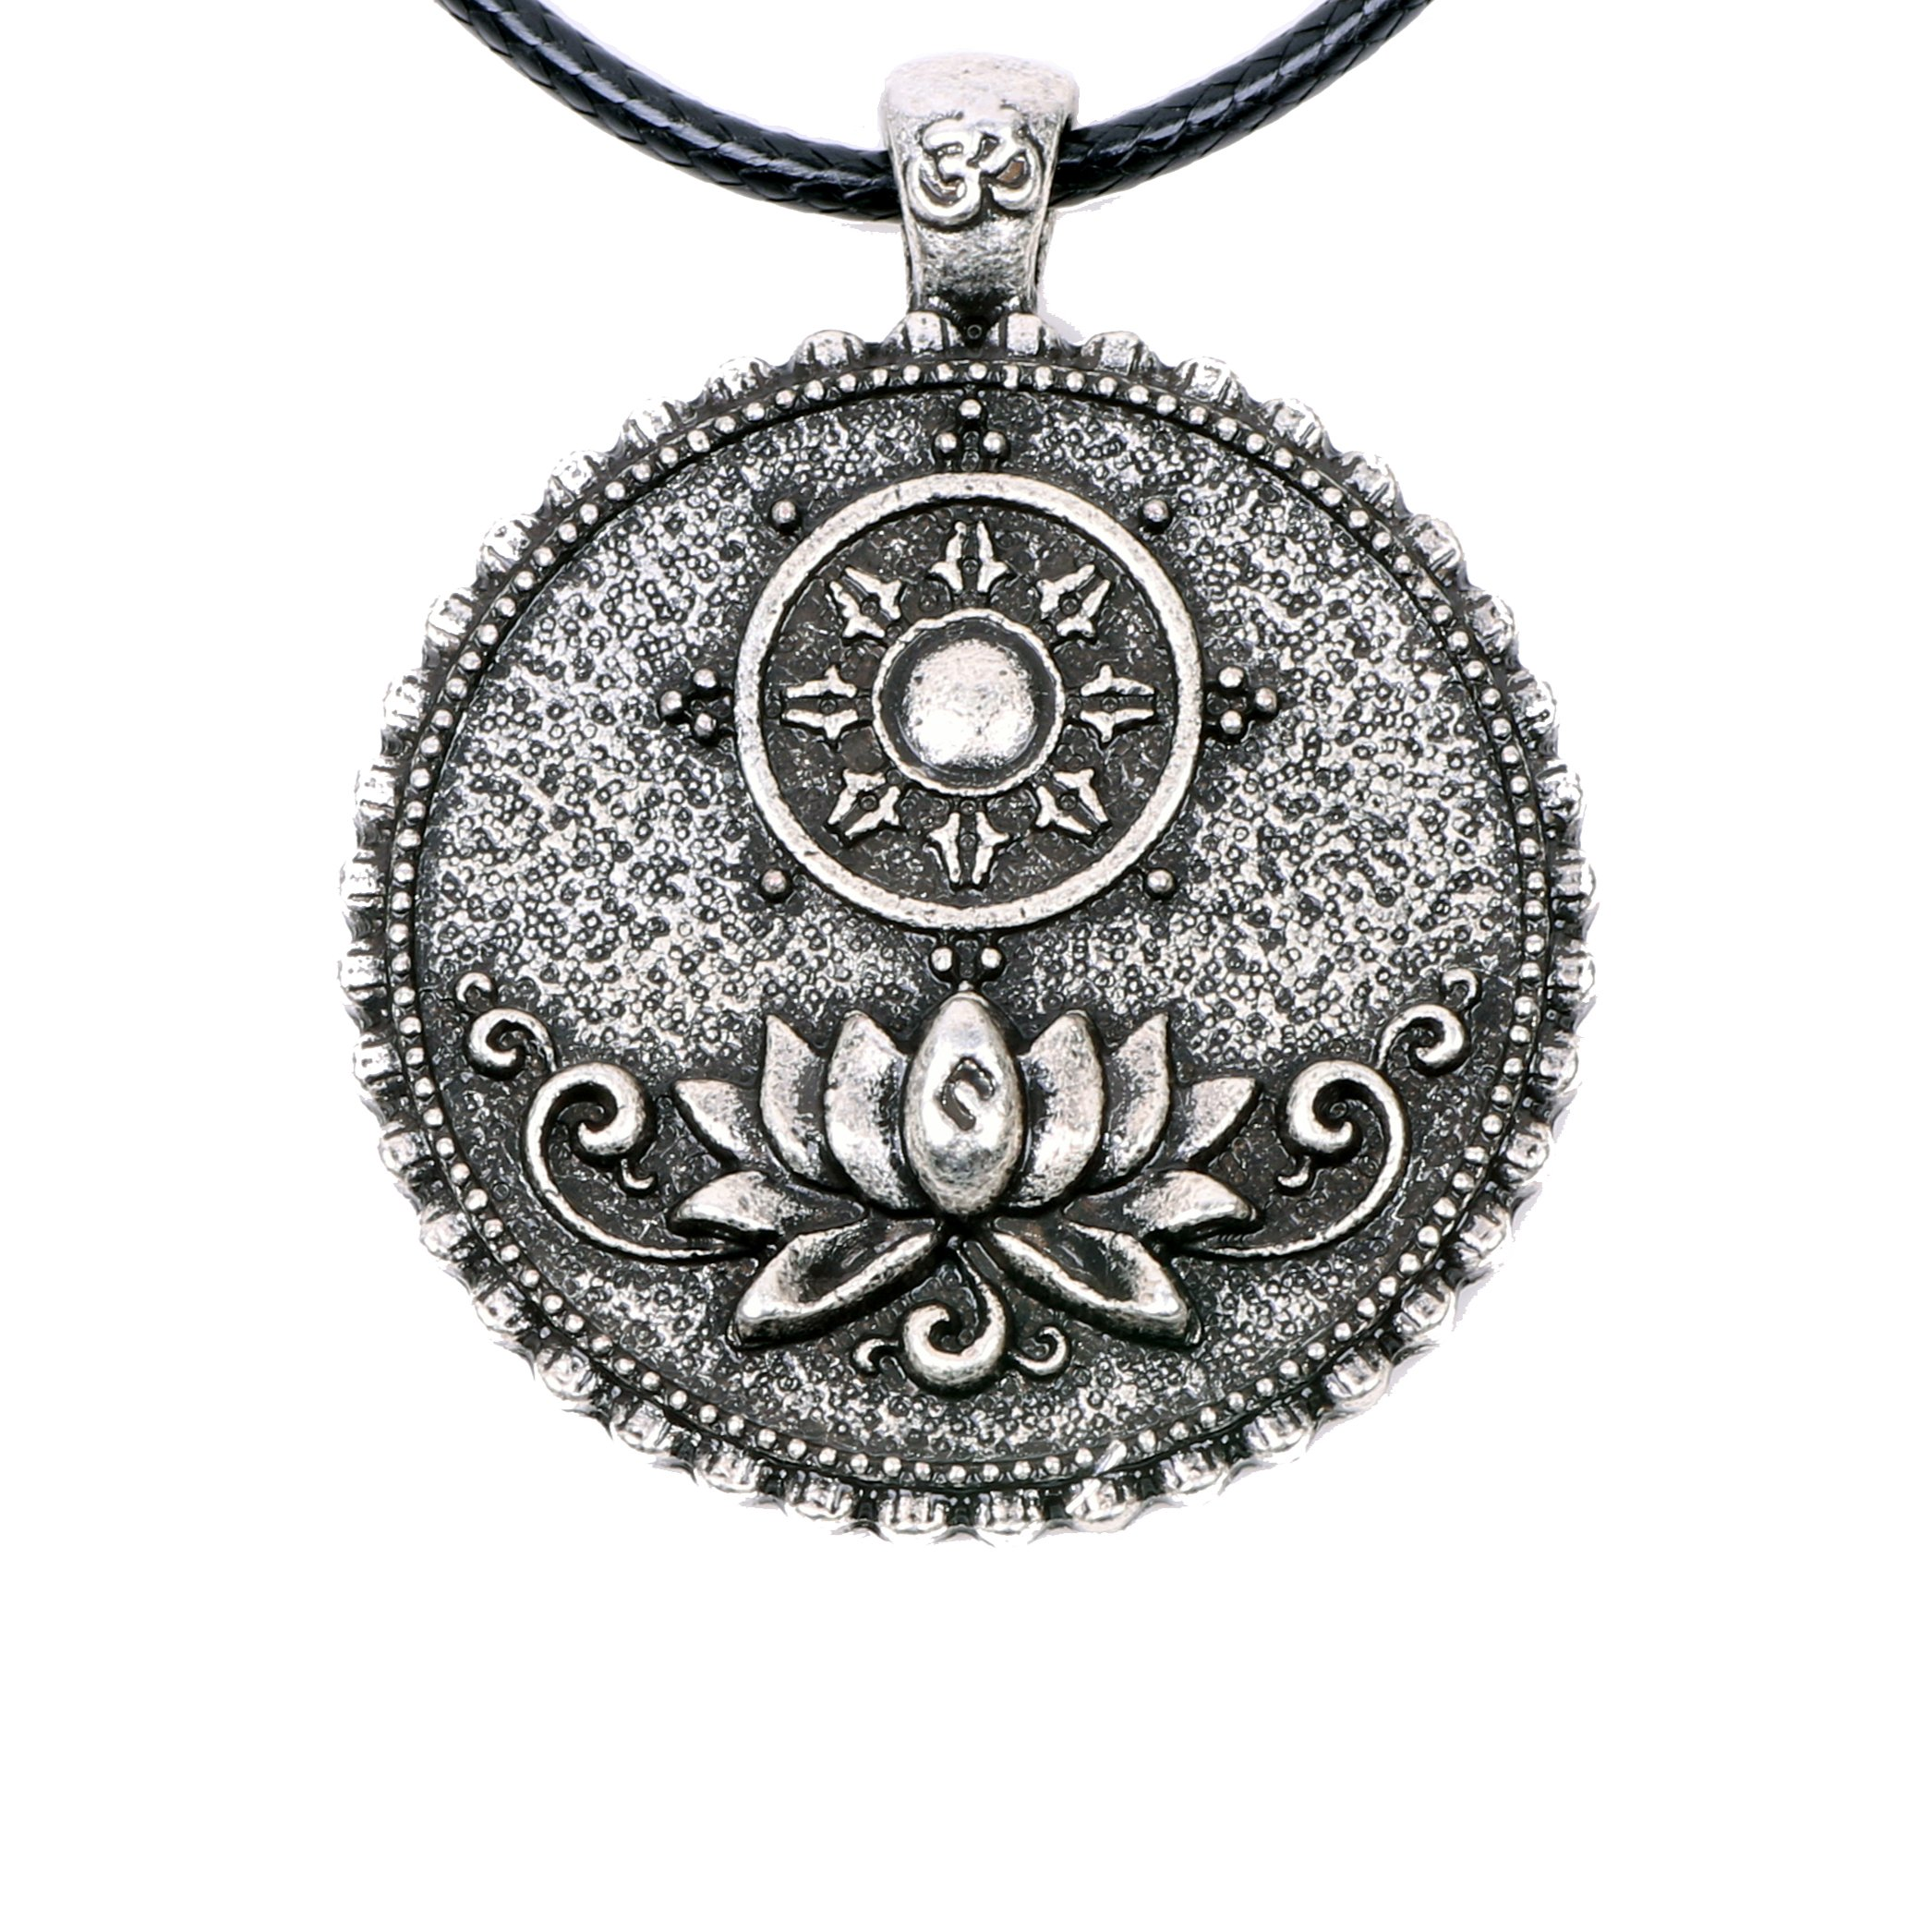 Paw Paw House Om Lotus Mandala Necklace Pendant Tibetan Buddhist Dharma Wheel Meditation Yoga Inspired Bohemian Boho Jewelry